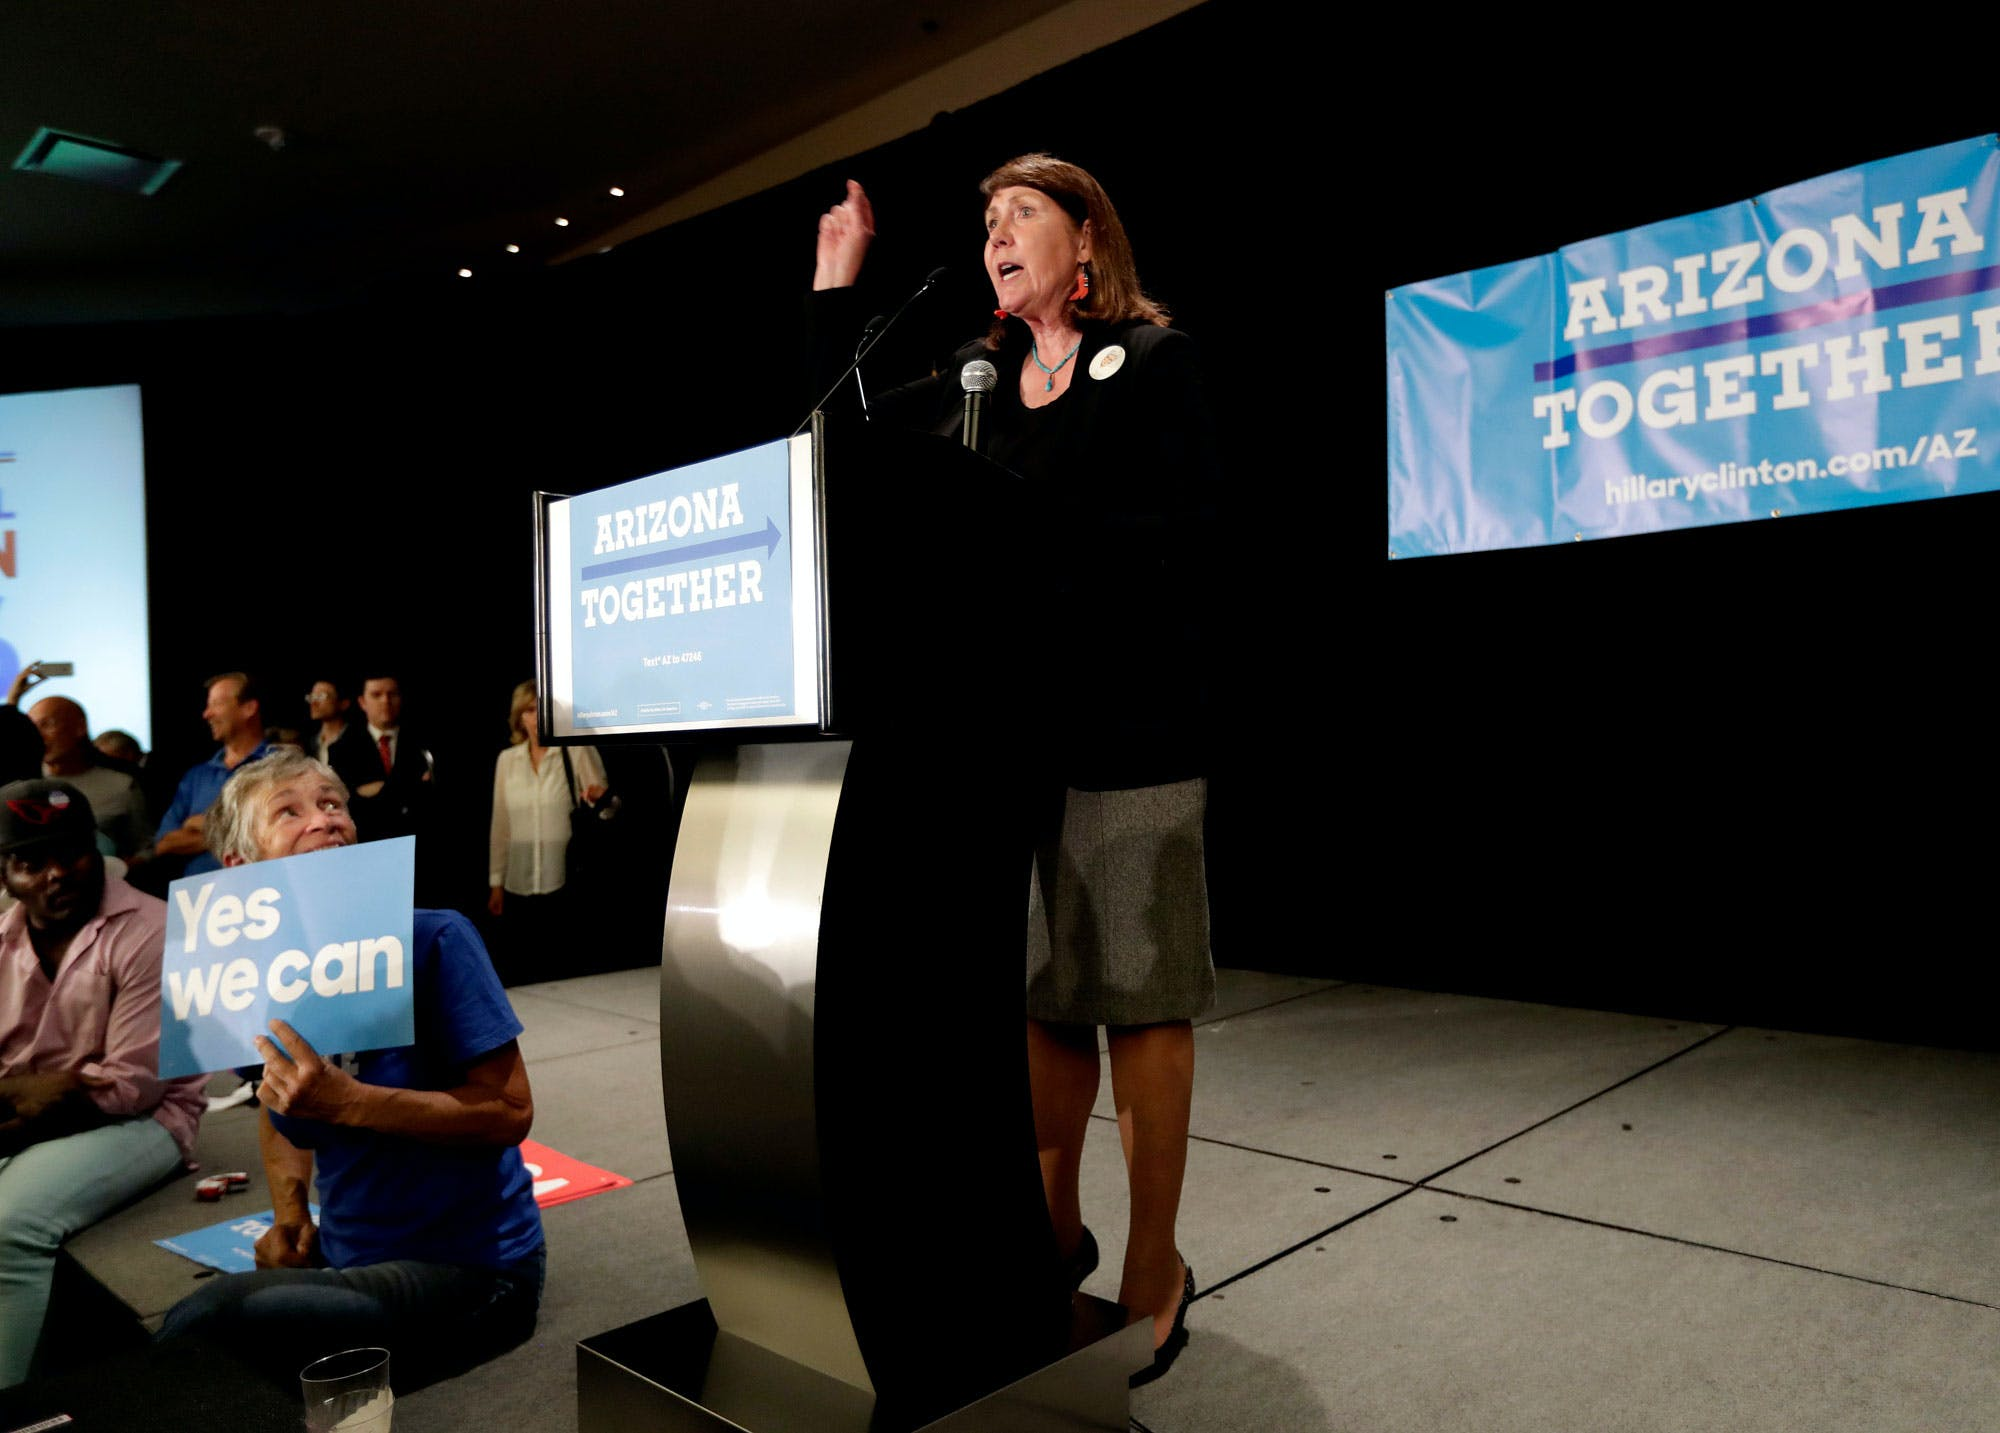 Democratic senatorial candidate U.S. Rep. Ann Kirkpatrick, D-Ariz., speaks to supporters during an election night party, Tuesday, Nov. 8, 2016, in Phoenix. Kirkpatrick is seeking to replace incumbent U.S. Sen. John McCain, R-Ariz. (AP Photo/Matt York)